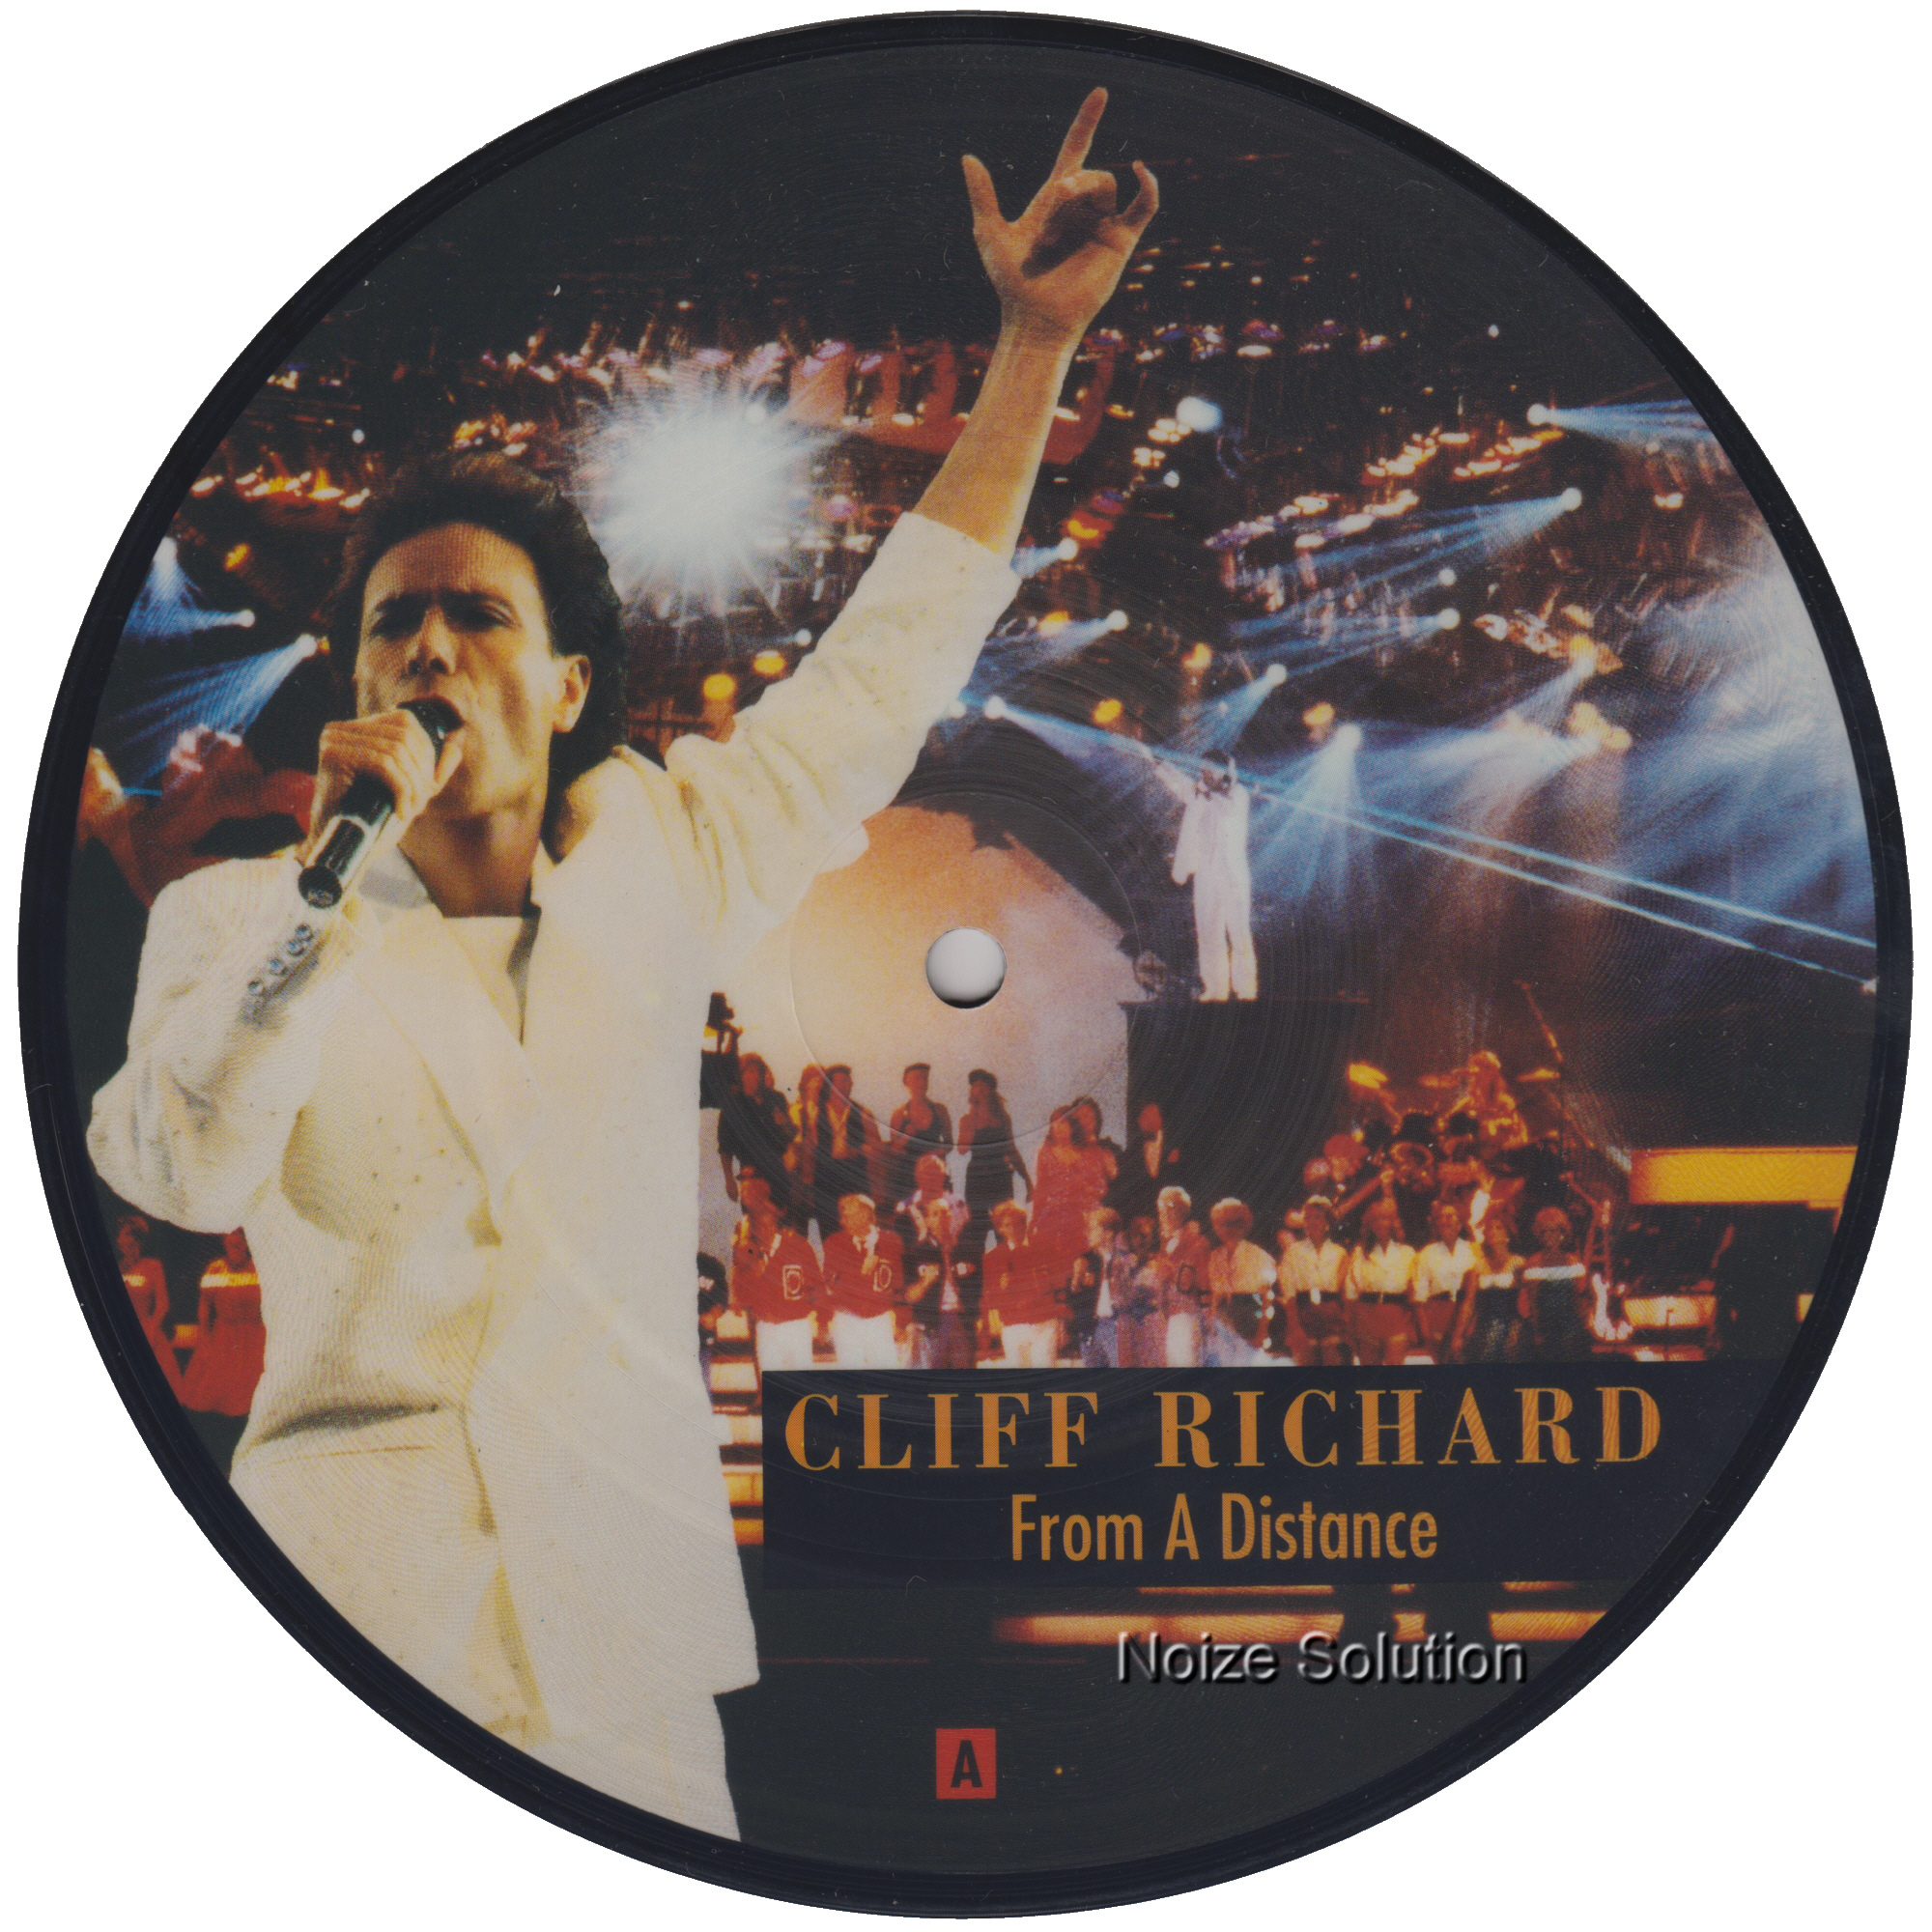 Cliff Richard - From A Distance 7 inch vinyl Picture Disc Record Side 1 CliffRichard.